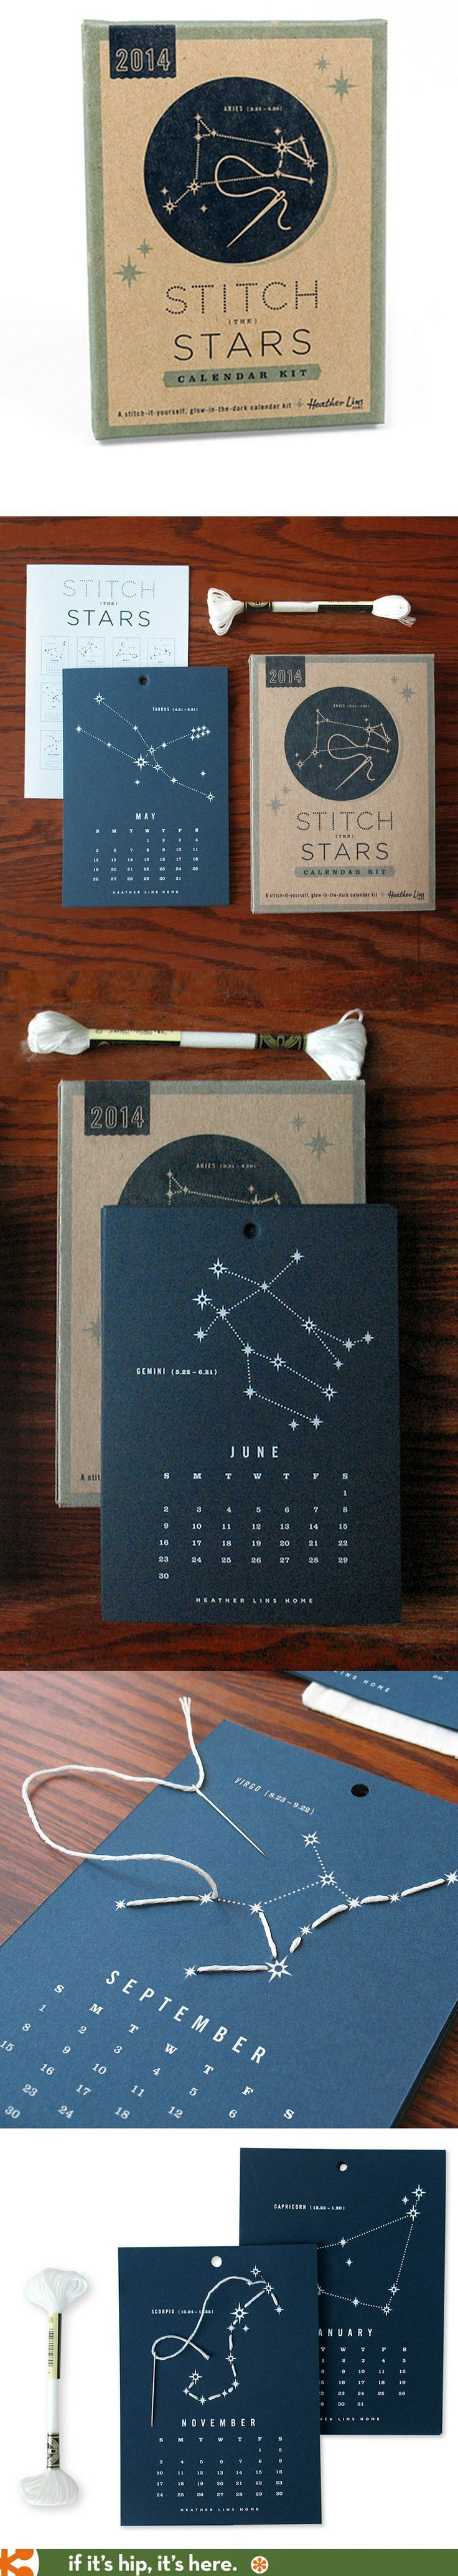 The 2014 Stitch The Stars Calendar KIt is beautifully designed and packaged.